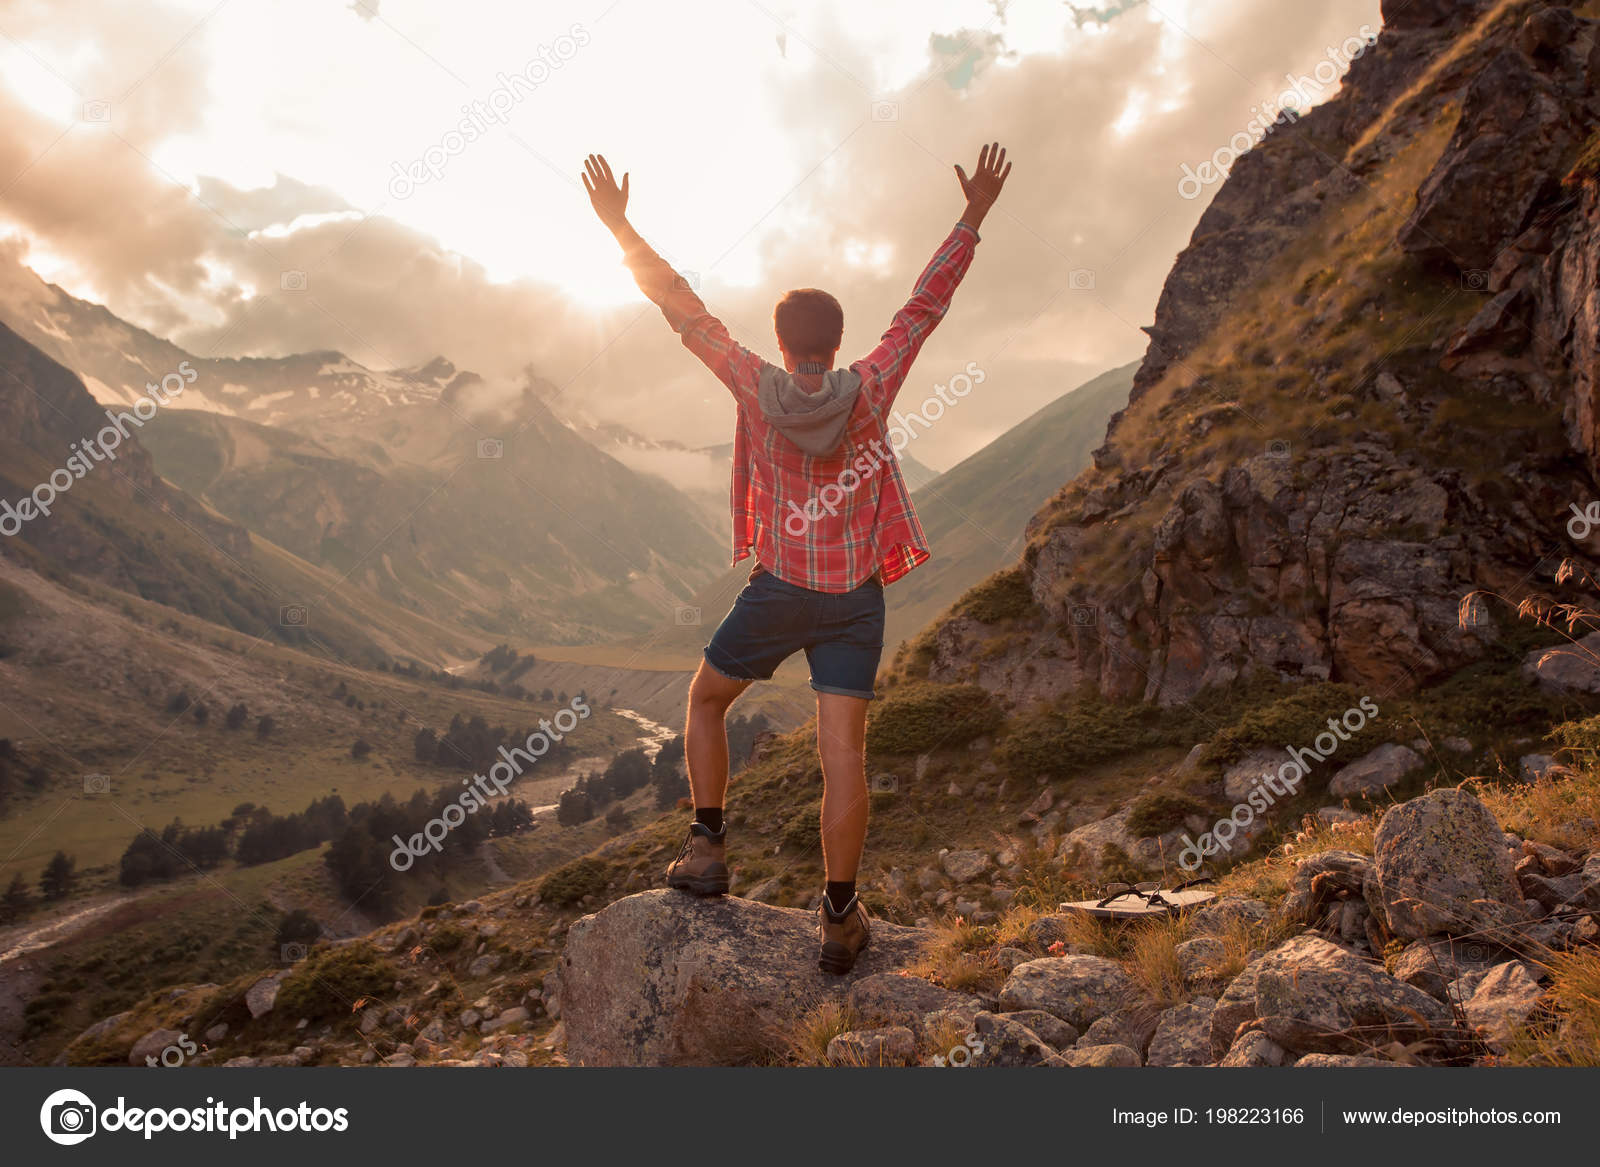 c9ecf0150351 Man Traveler hiking Travel Lifestyle concept beautiful mountains landscape  on background Summer journey adventure vacations outdoor — Photo by Santiaga